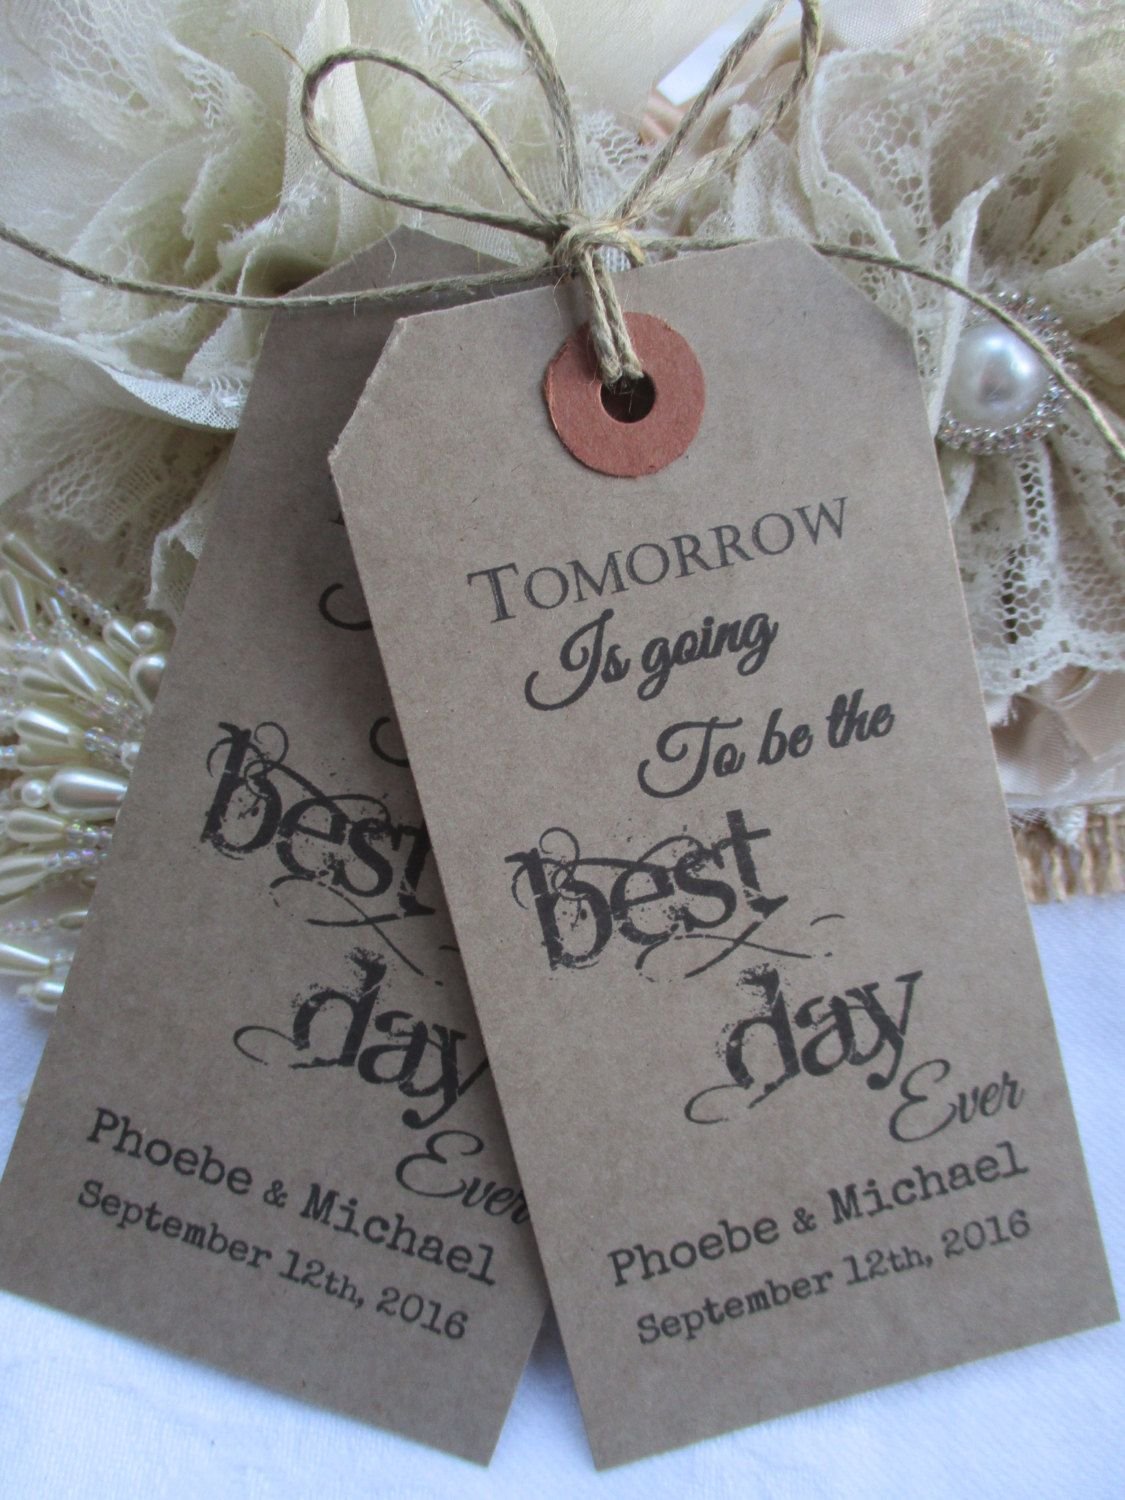 creative wording for rehearsal dinner invitations%0A    Wedding Rehearsal Dinner Party Favors Tomorrow is Going to be the Best  Day Ever Party Bags  Wedding Rehearsal Favors Candy Bags  u     Toppers    Rehearsal